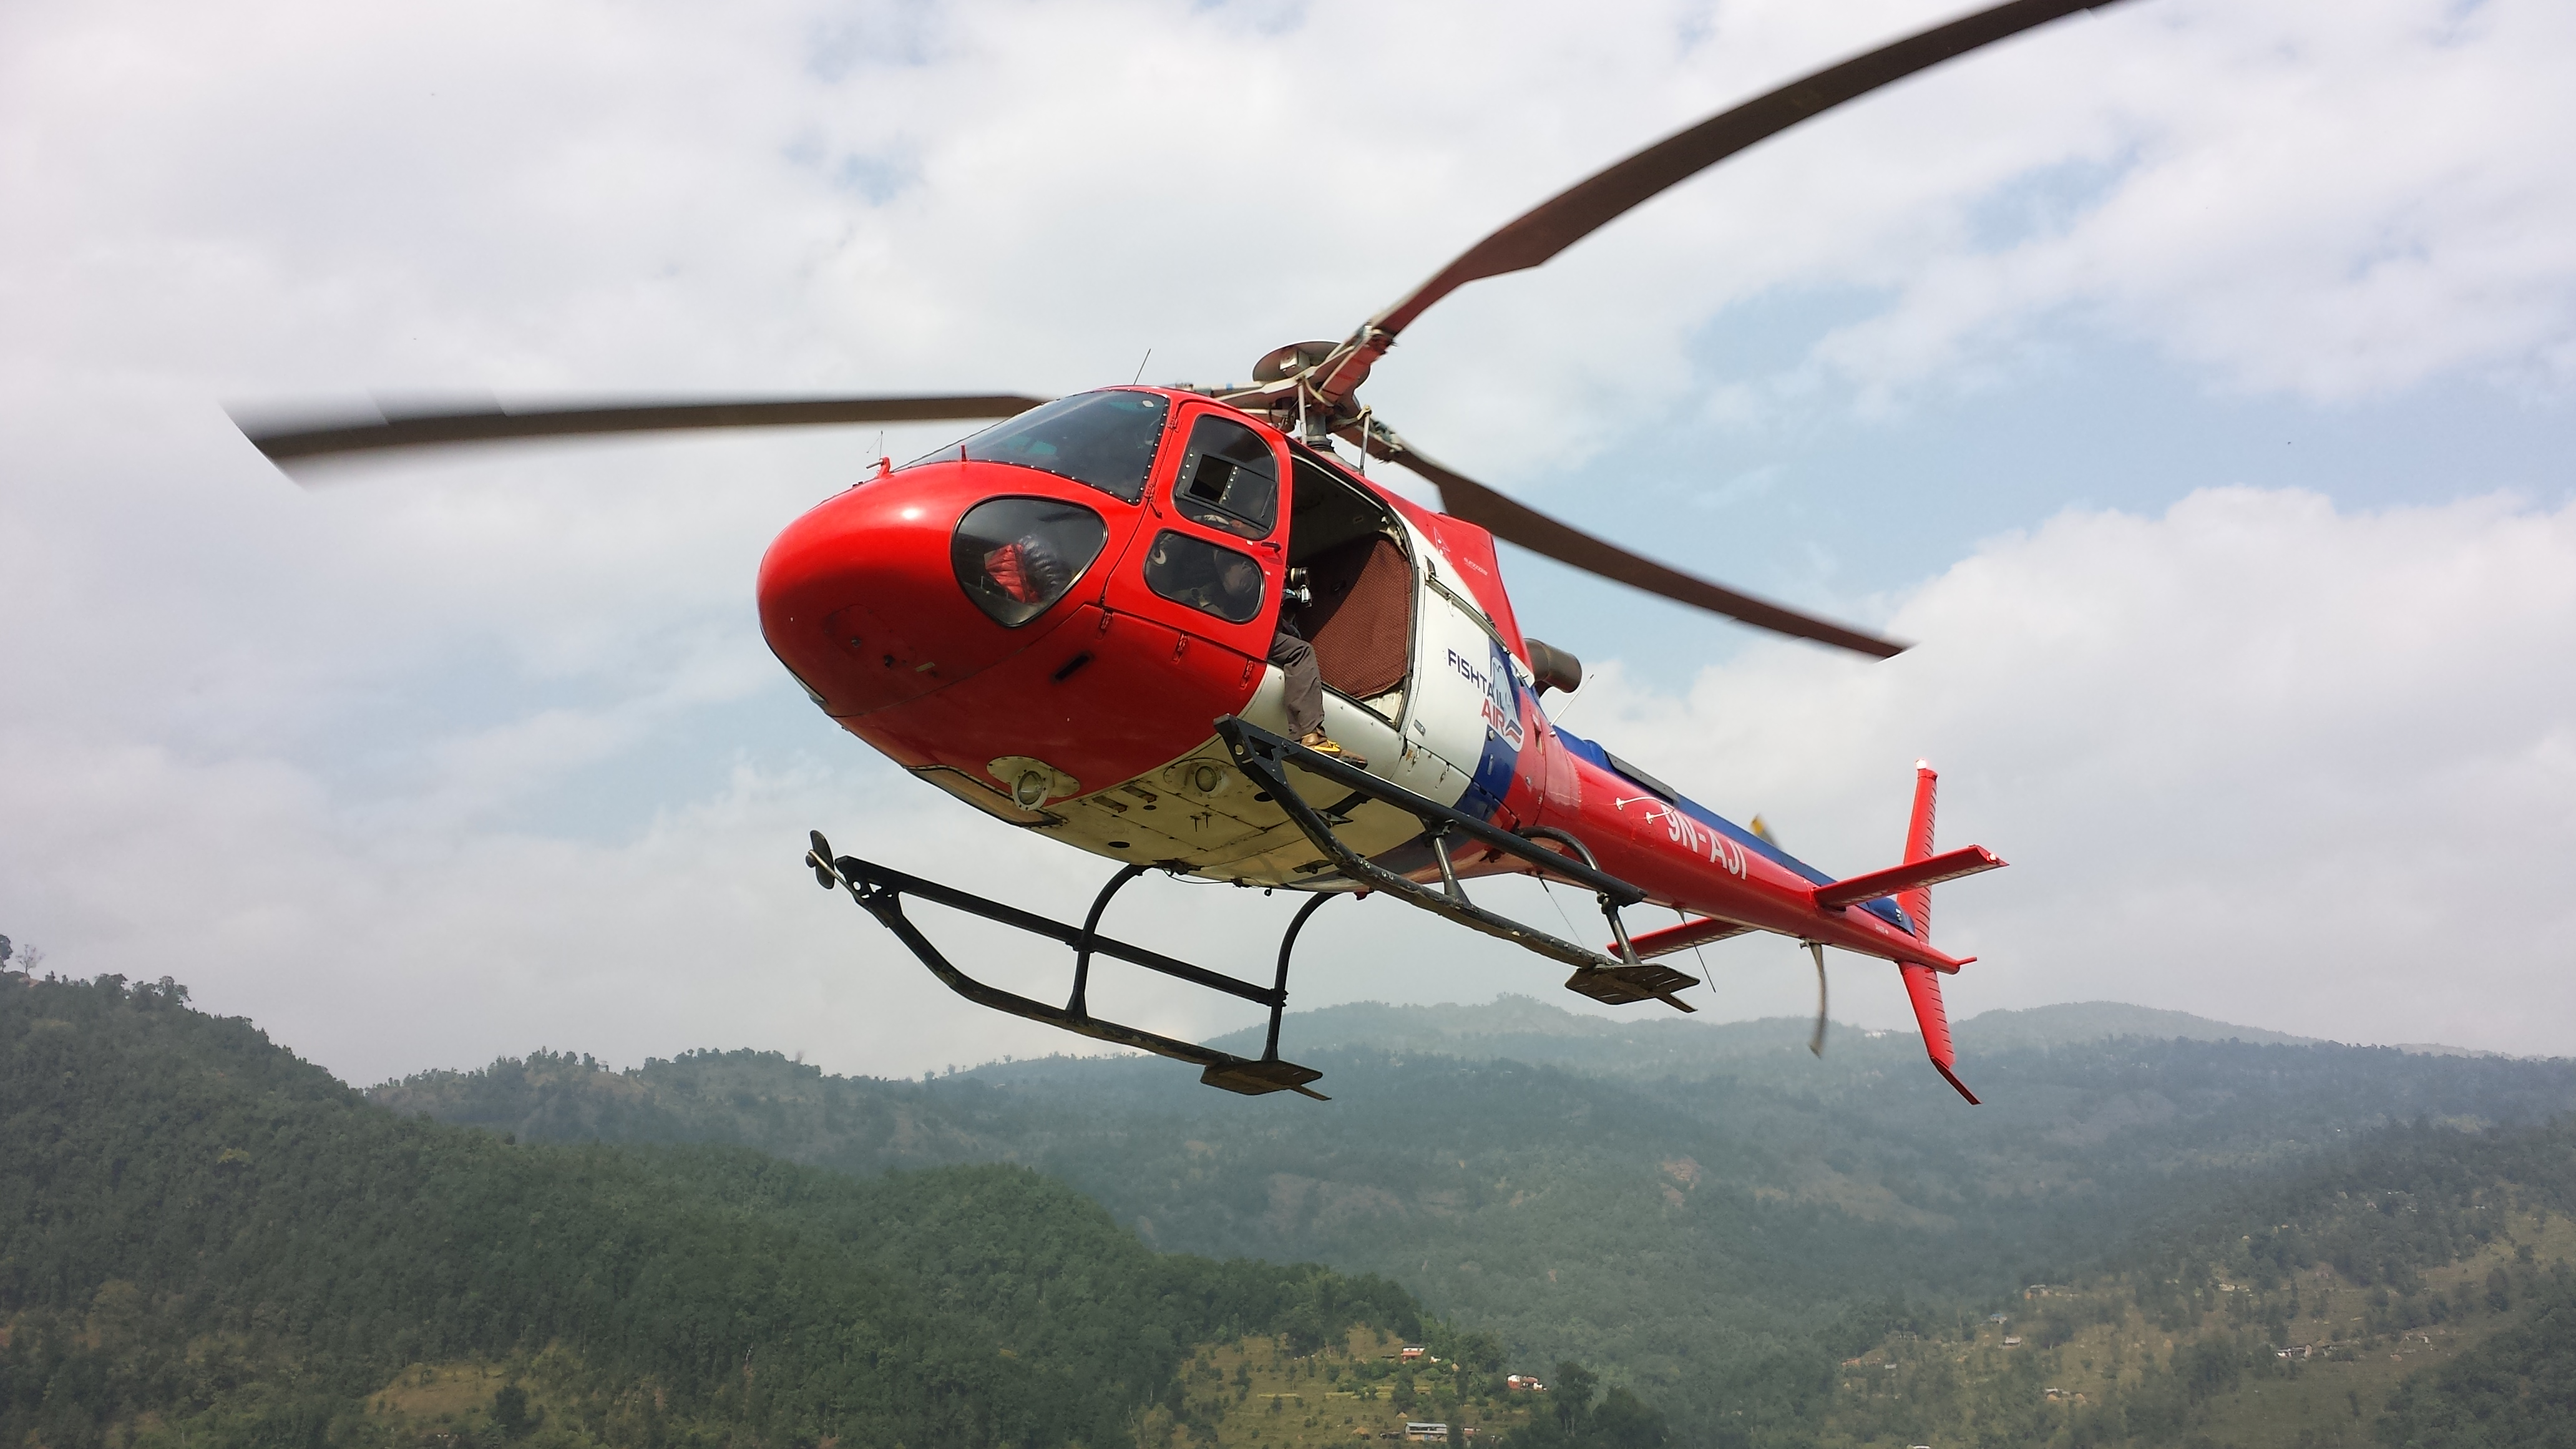 Nepal Poon hill Helicopter Tour